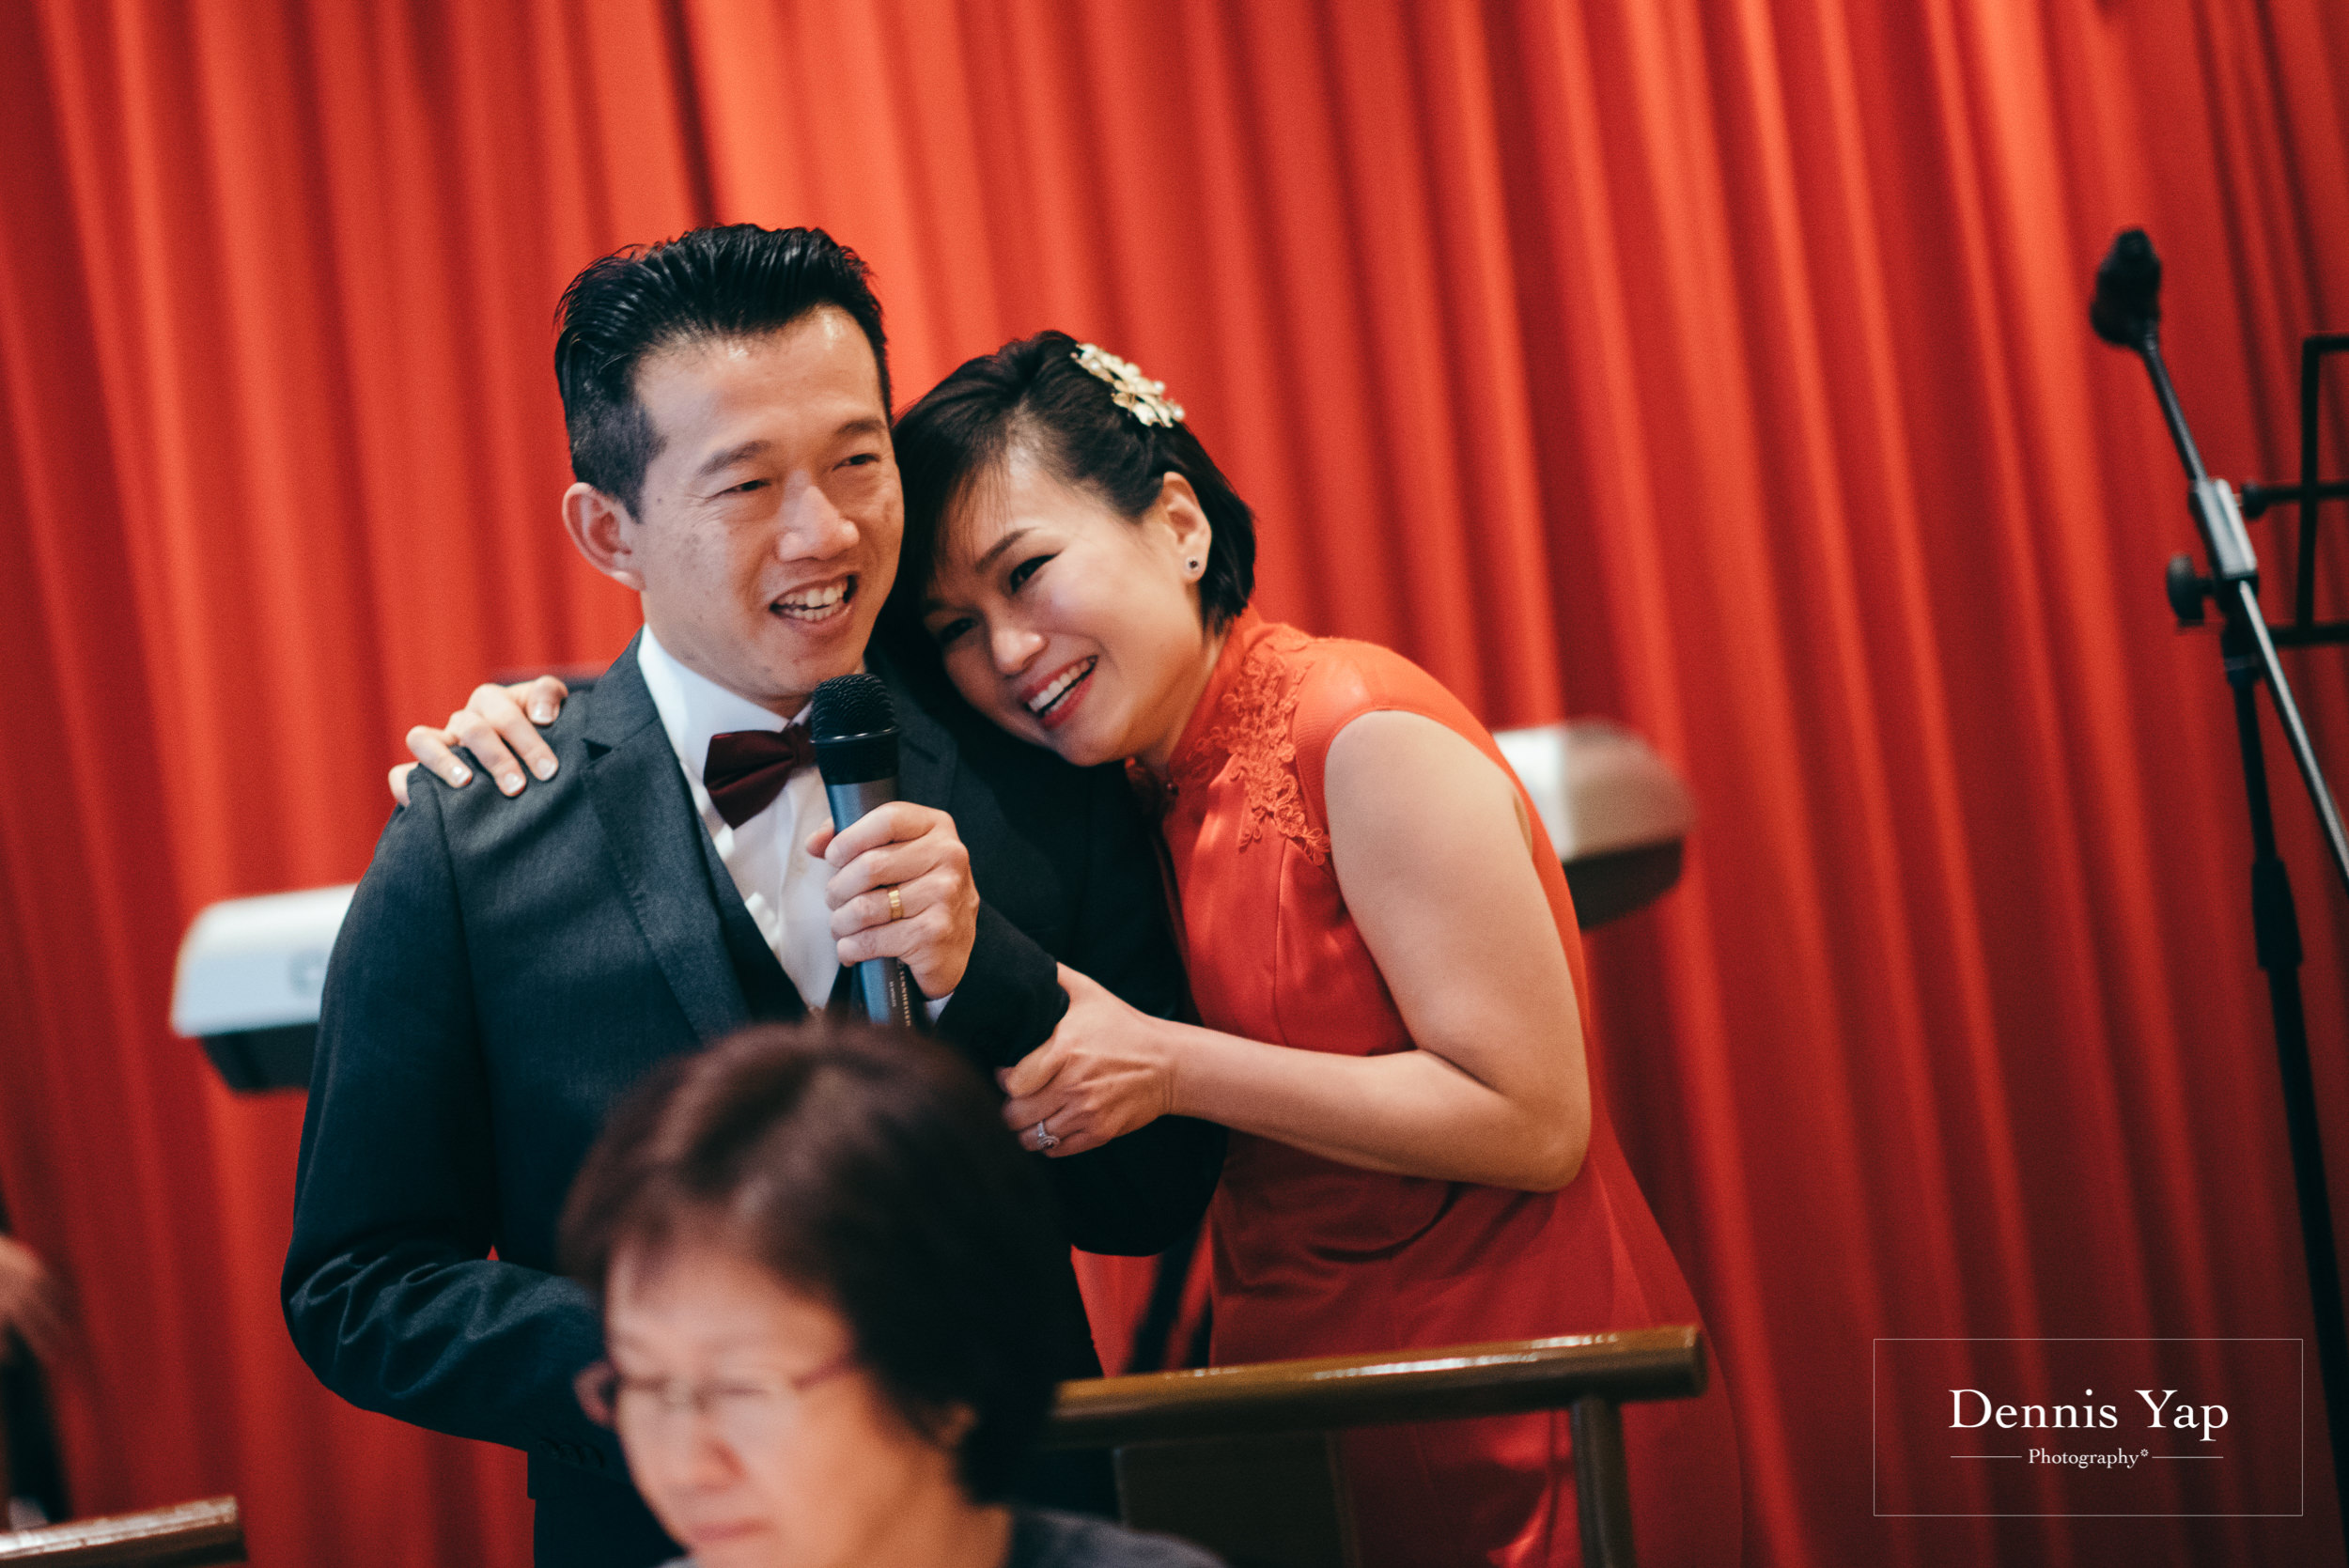 boon weng cyndy simple wedding gate crash luncheon shangrila kuala lumpur red traditional dennis yap photography-121.jpg